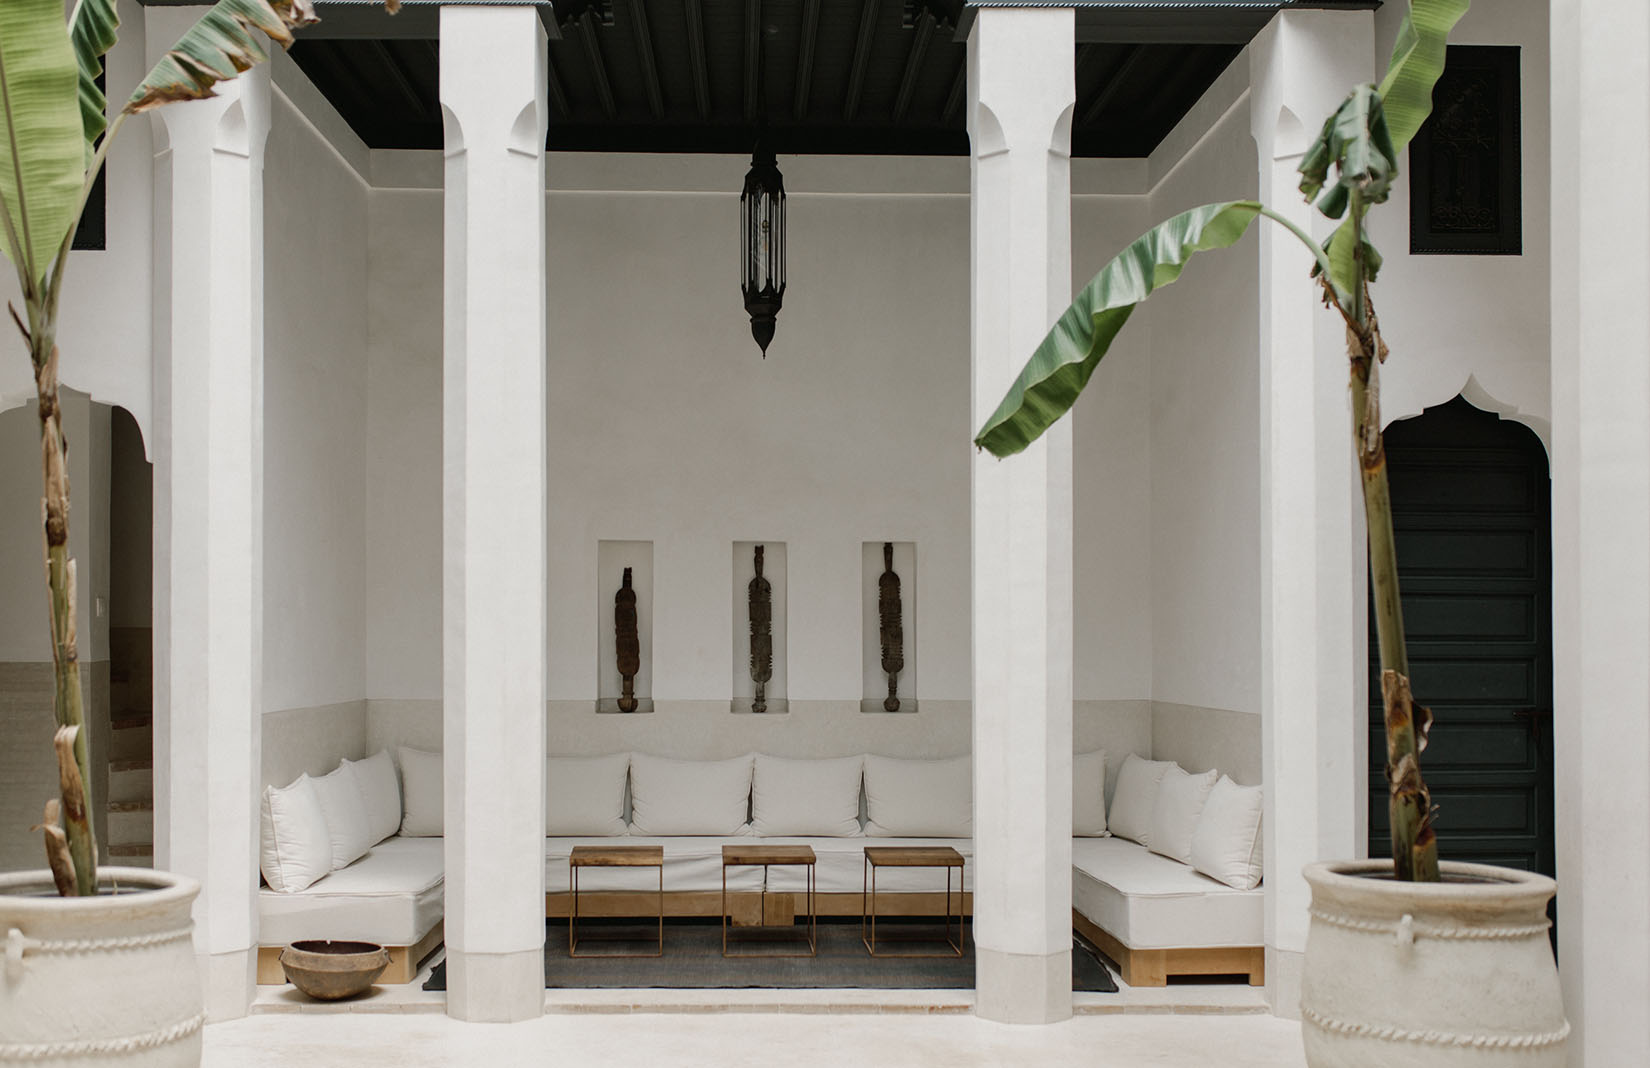 Holiday home of the week: a minimalist riad in Marrakech's Medina: Riad 42